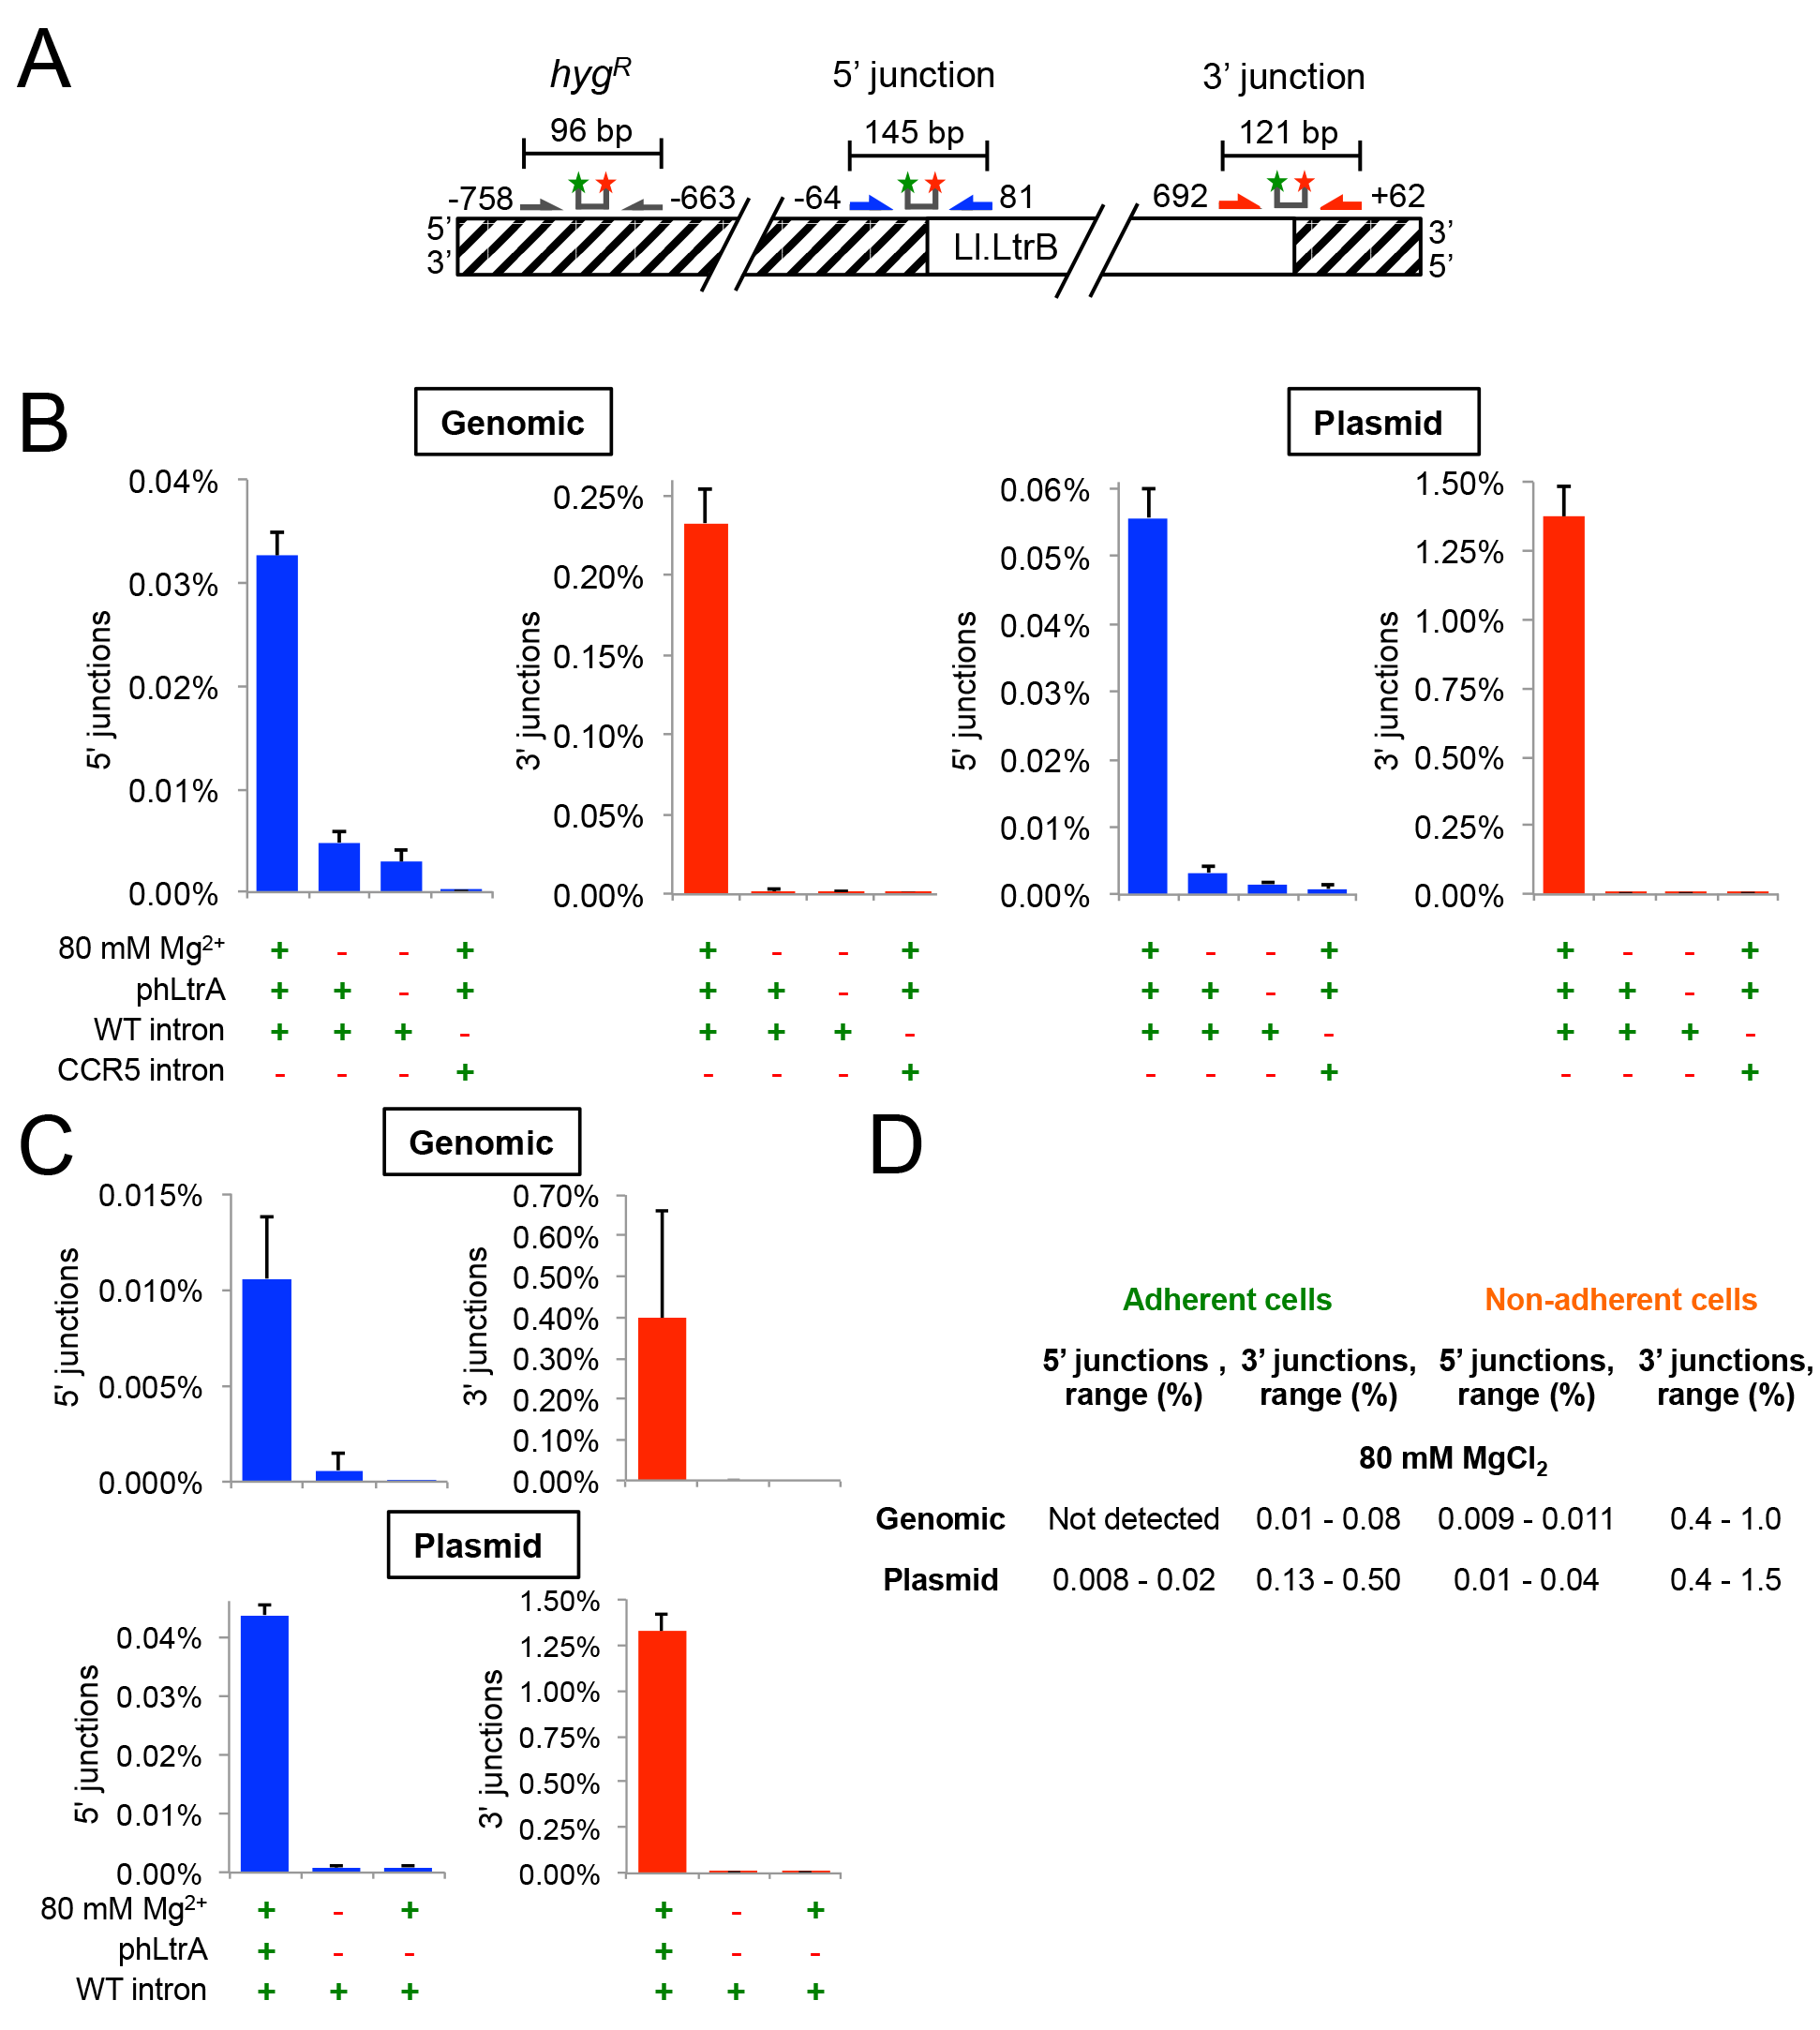 The group II intron Ll.LtrB can retrohome into genomic and plasmid target sites in human cells after addition of Mg<sup>2+</sup> to the cell culture medium.